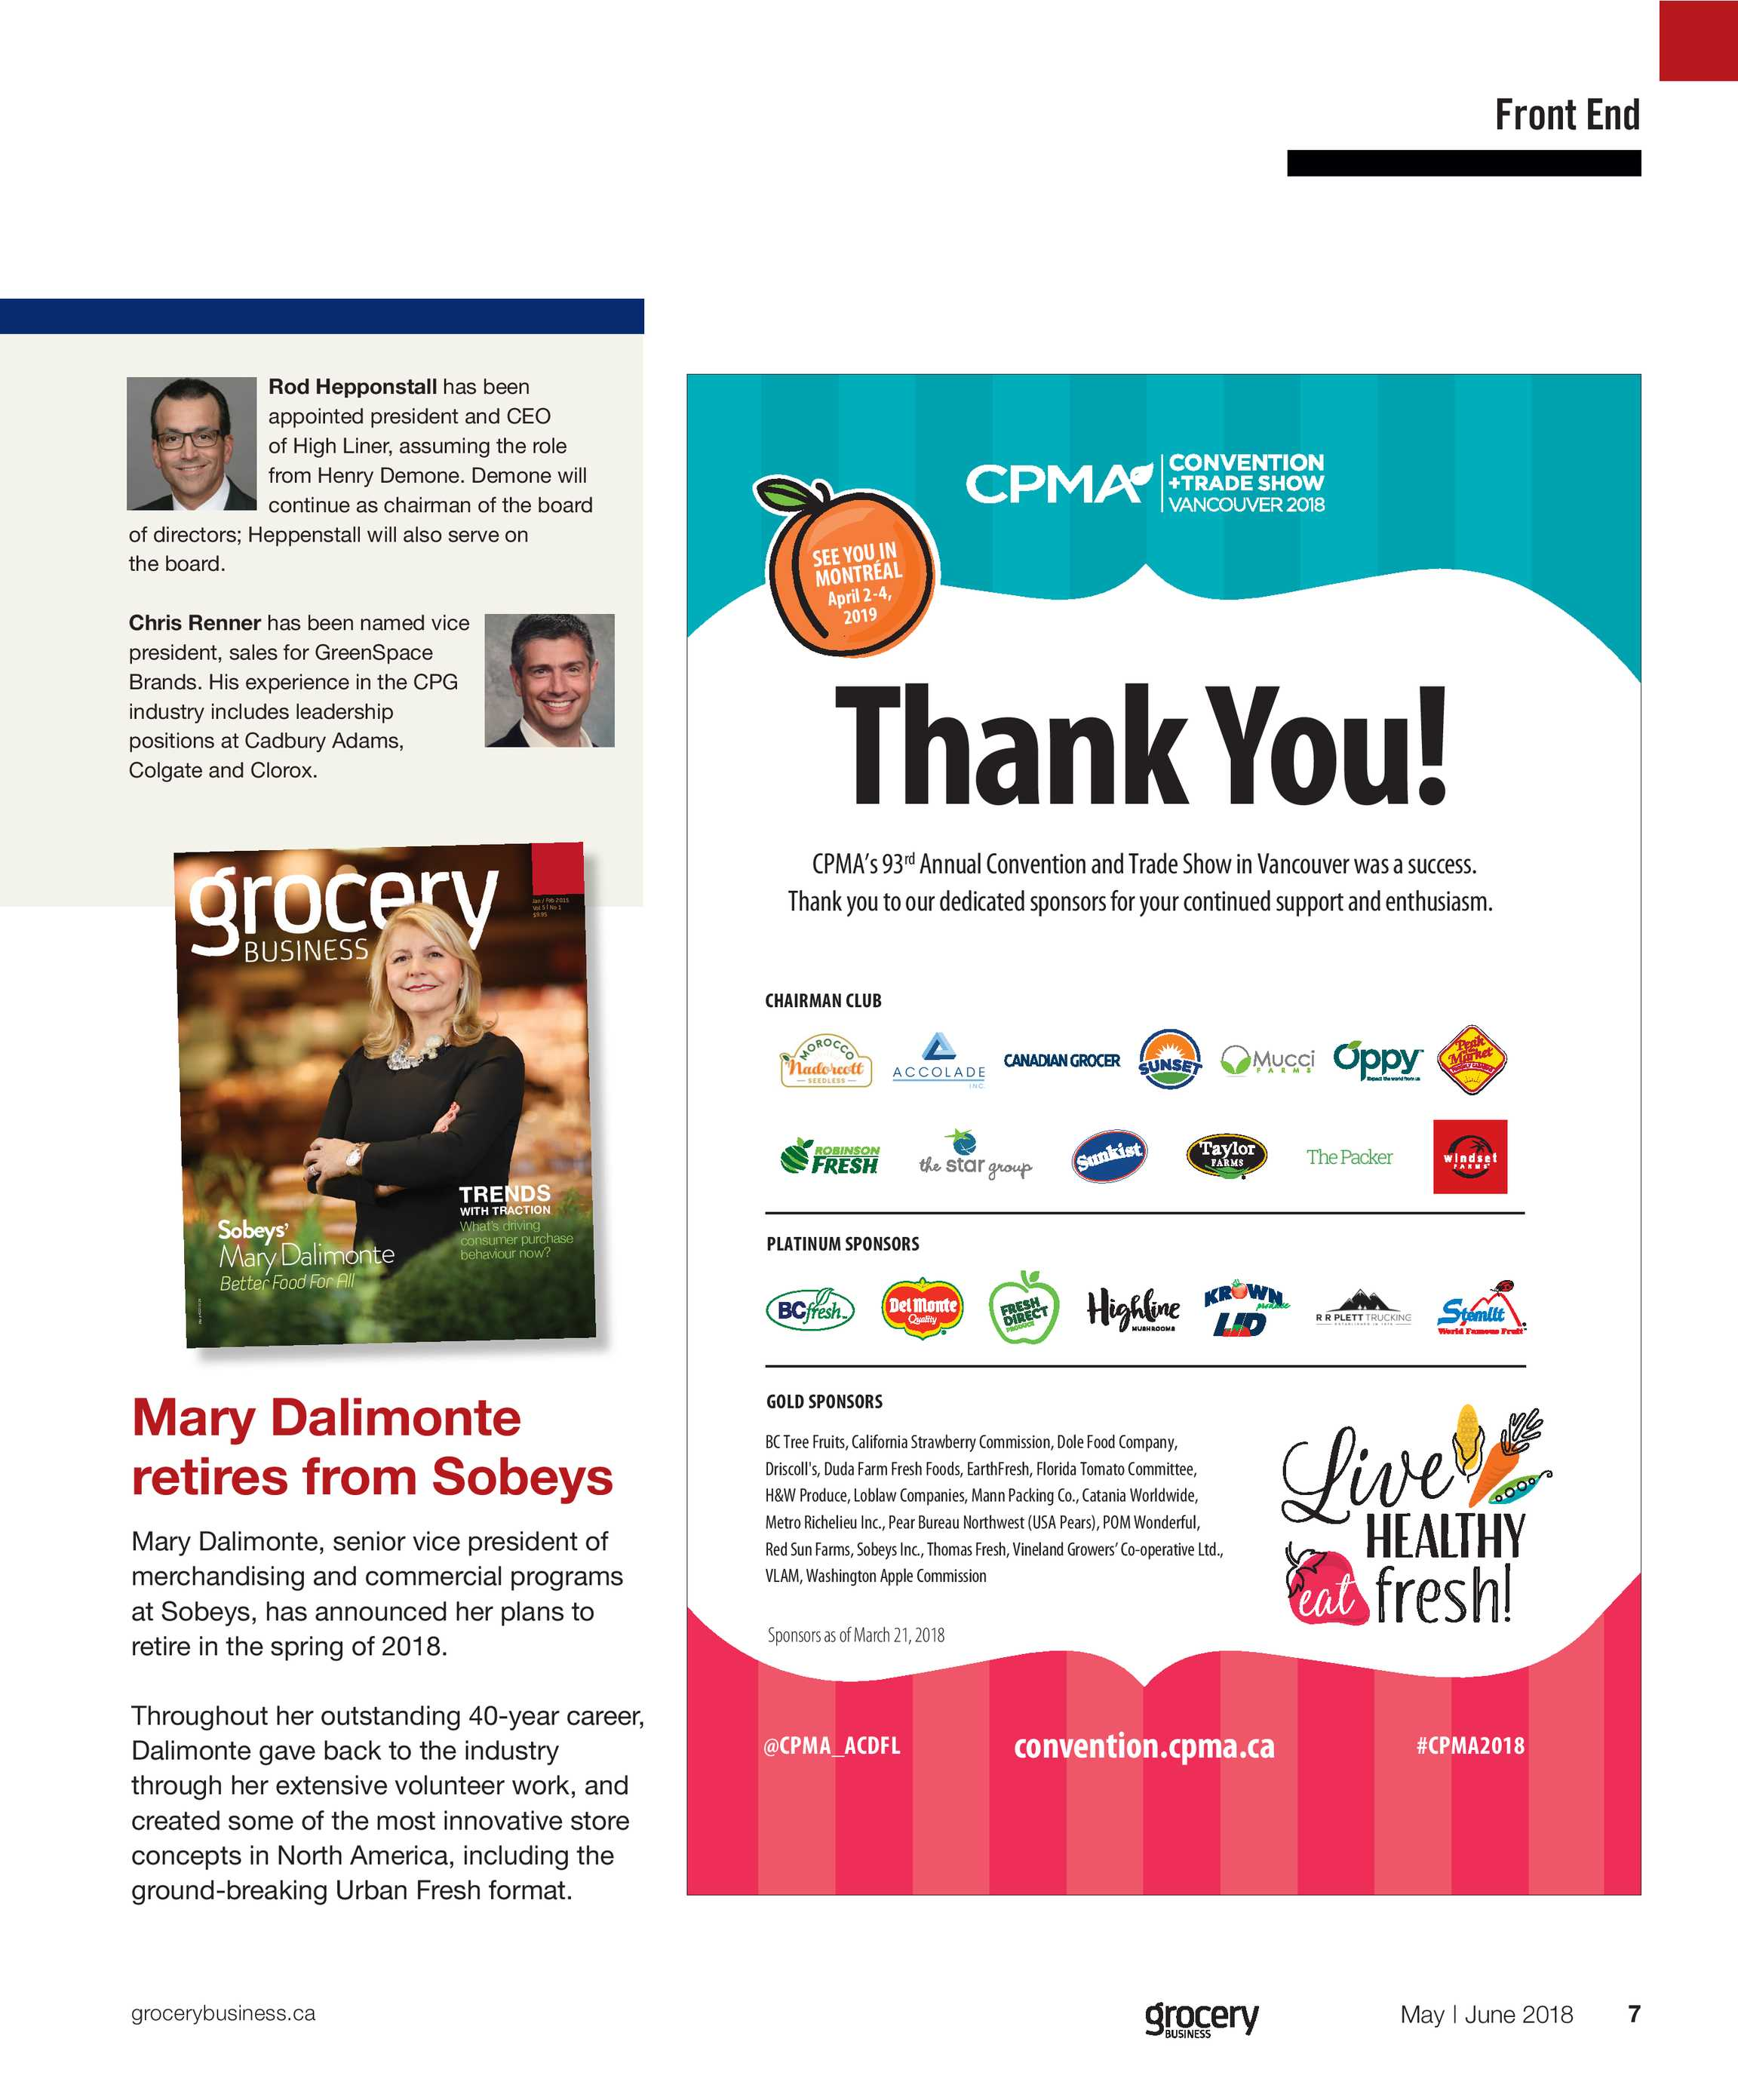 Grocery Business Magazine - May/June 2018 - page 6